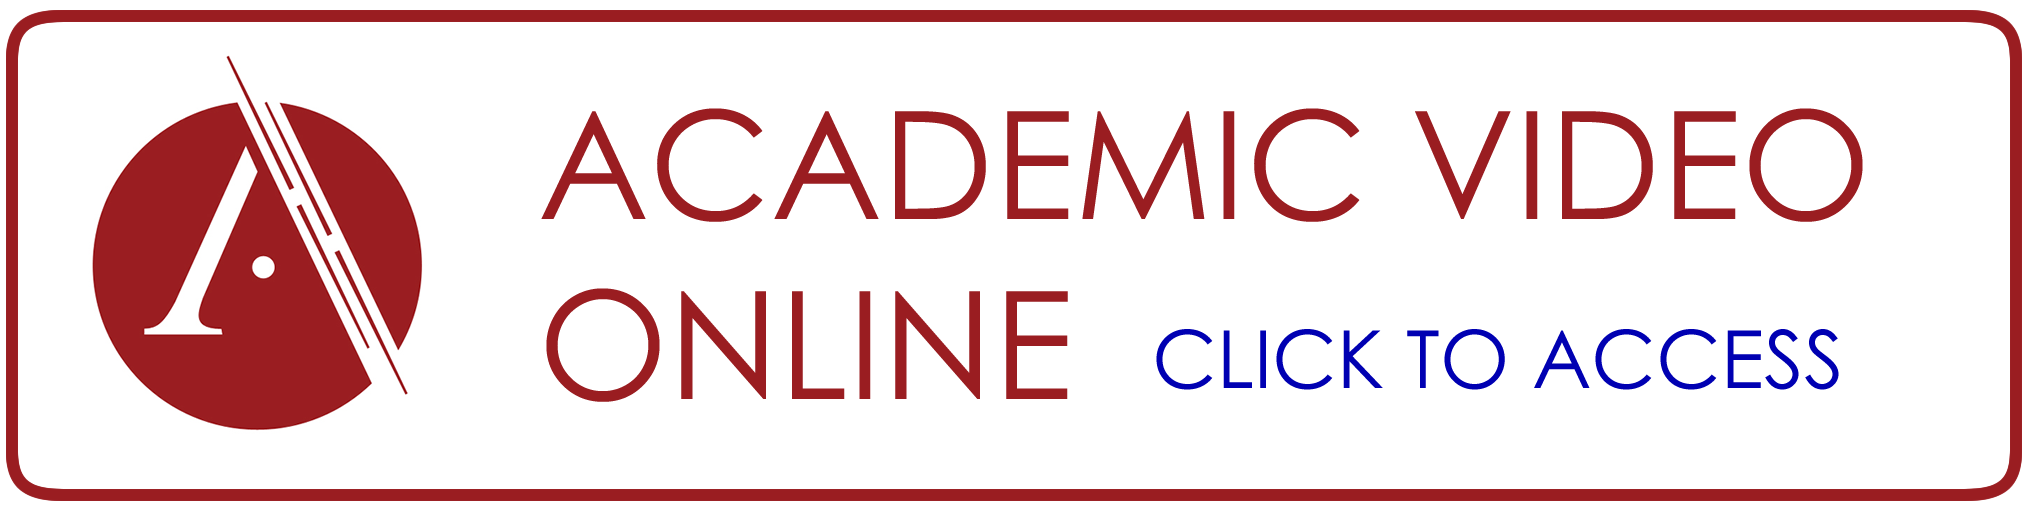 Academic Video Online button